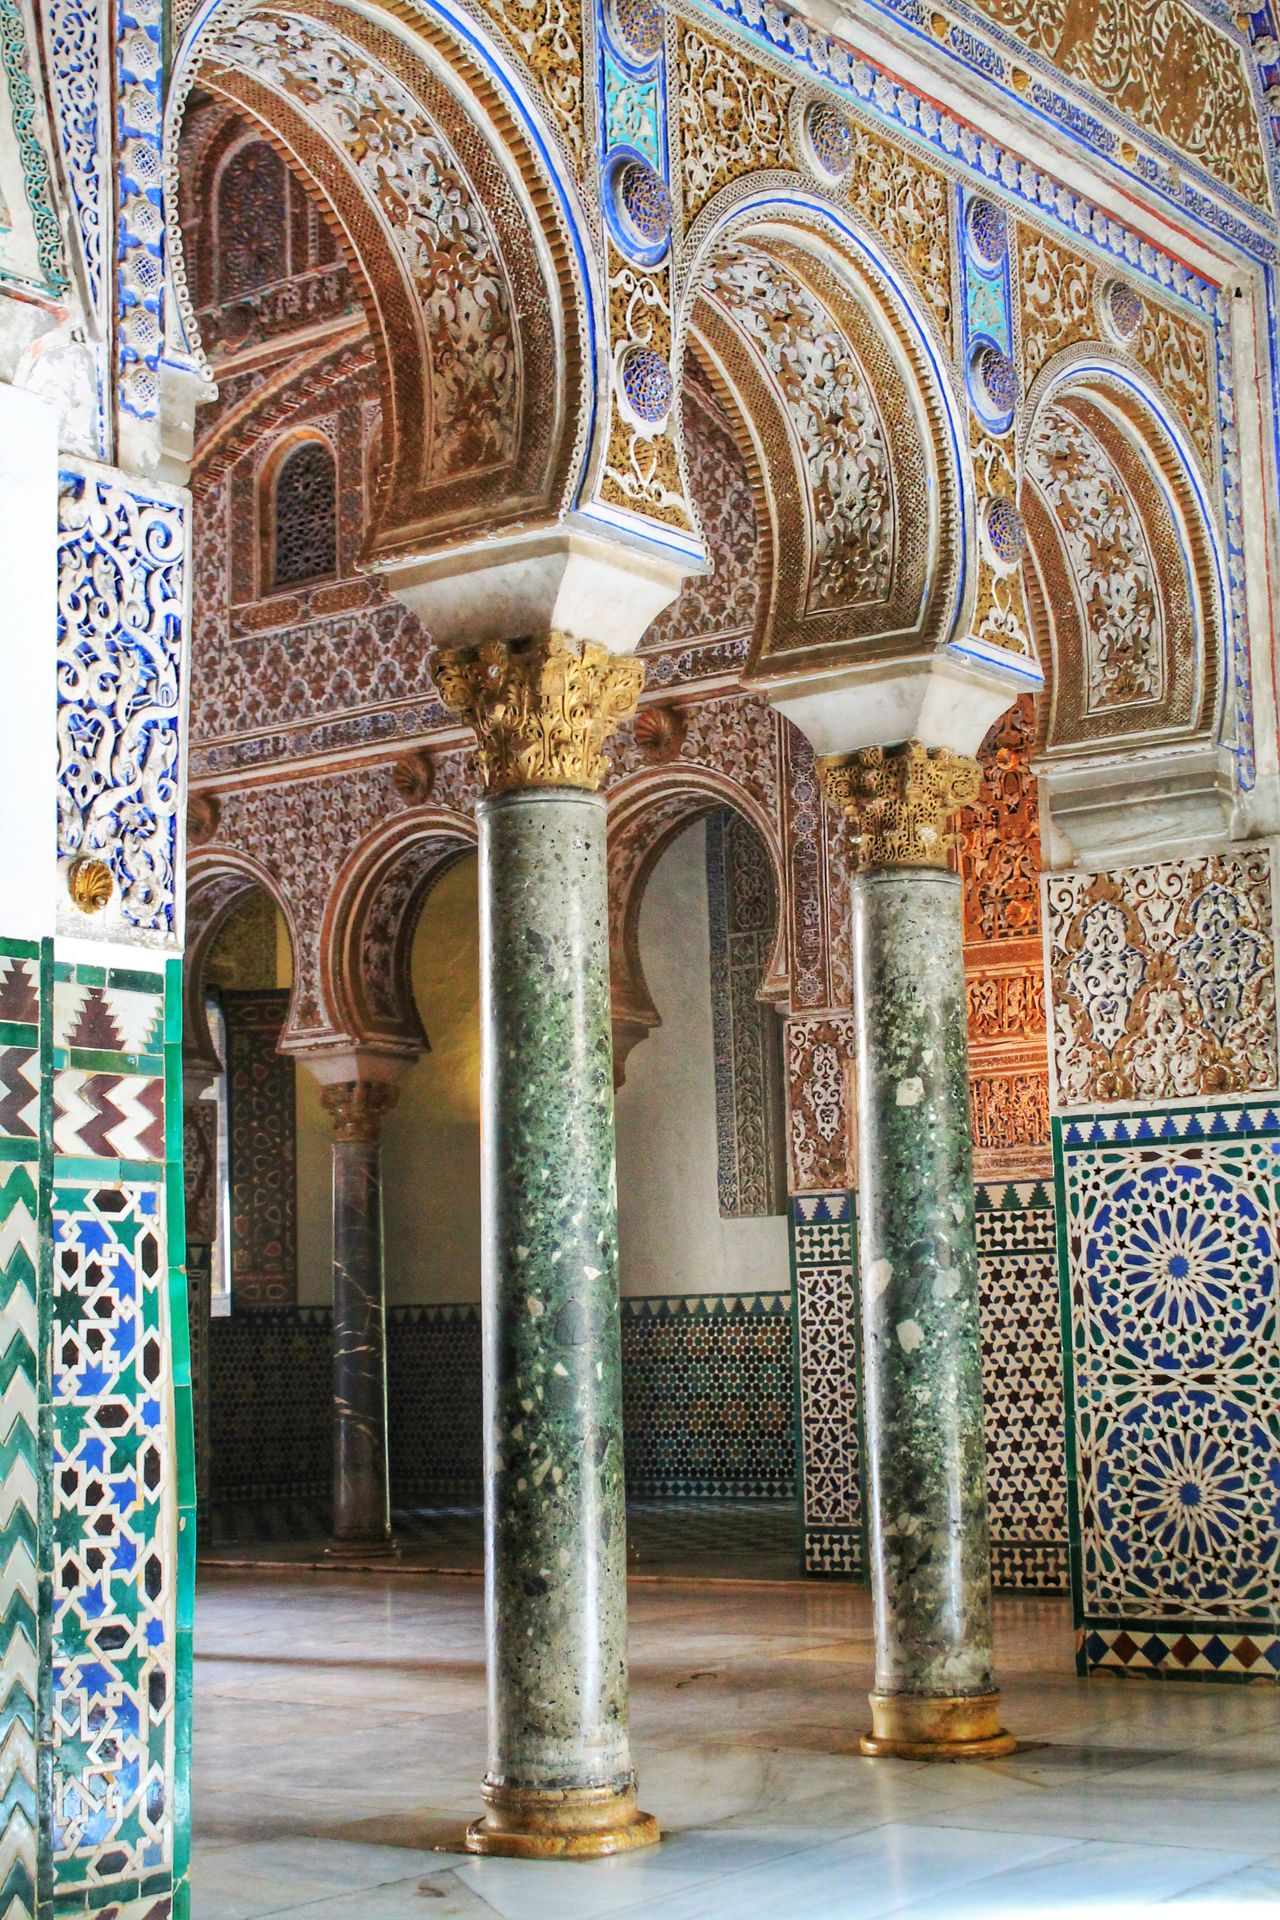 Alcazar Andalucía Arabesque Architectural Column Architecture Building Exterior Built Structure Cultures Day Hall History Indoors  Islamic Architecture Mosaic No People Palace Passage Place Of Worship Religion Sevilla SPAIN Tiles Travel Destinations